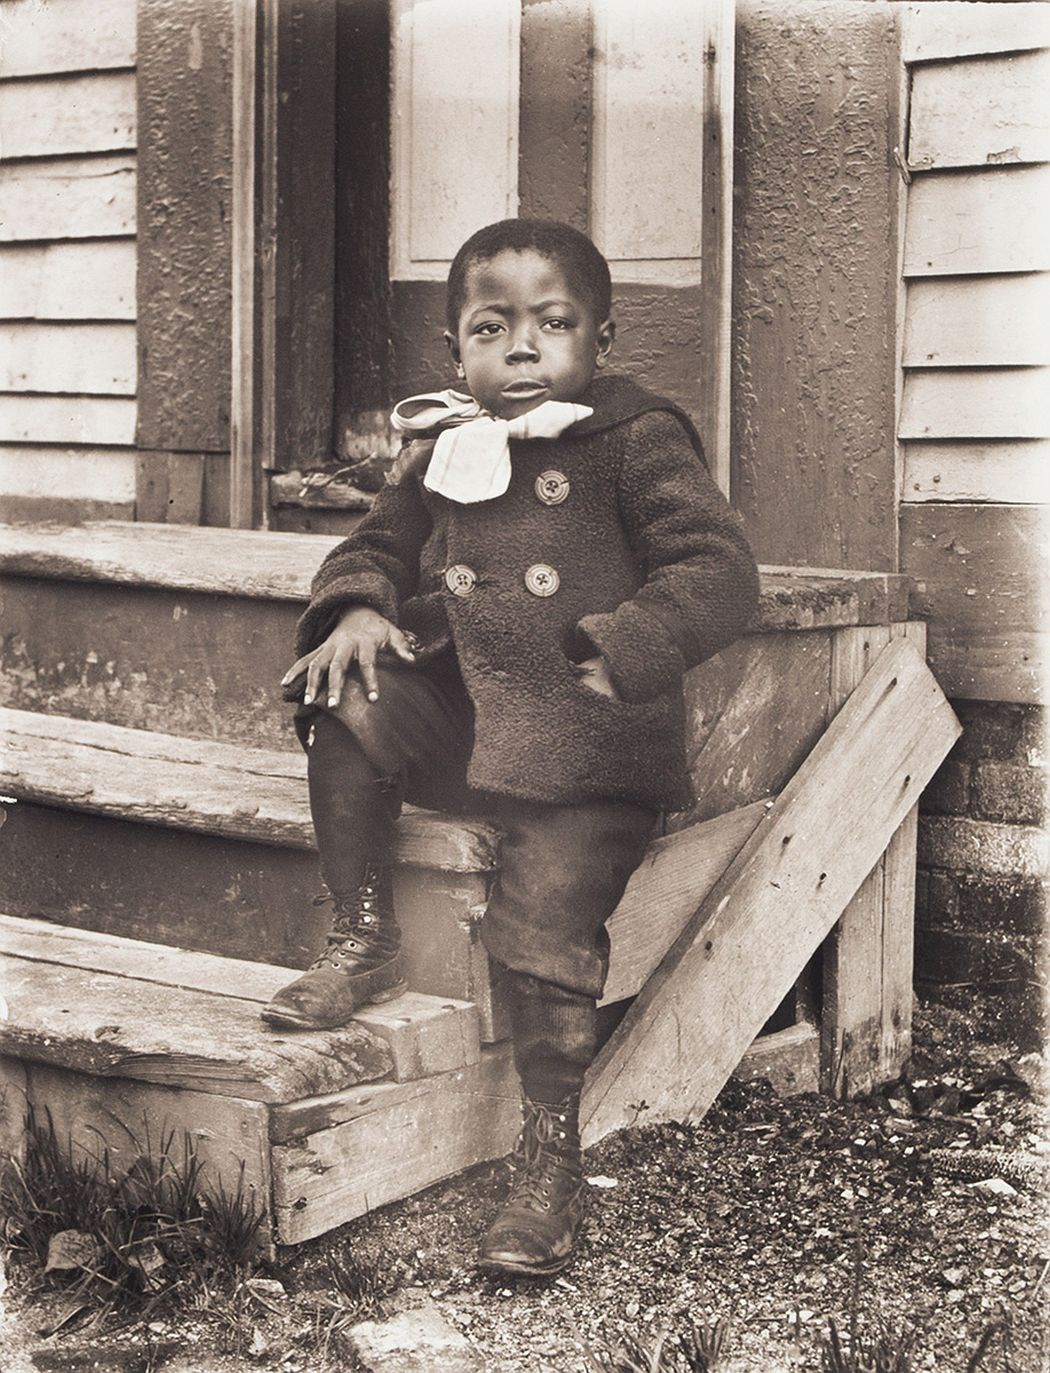 Portrait of Ralph Mendis on a Stoop, about 1902, printed 2016, archival inkjet print, E.132.16.8 Ralph Mendis was born in 1897 and is seen here at approximately age 5. His mother Francis was part of the New Bern, North Carolina, migration of blacks to Worcester, Massachusetts. His father was one of a handful of Jamaican immigrants who resided in the city. Rhode Island records from 1906 indicate that Ralph died as a child, though the cause is unknown.